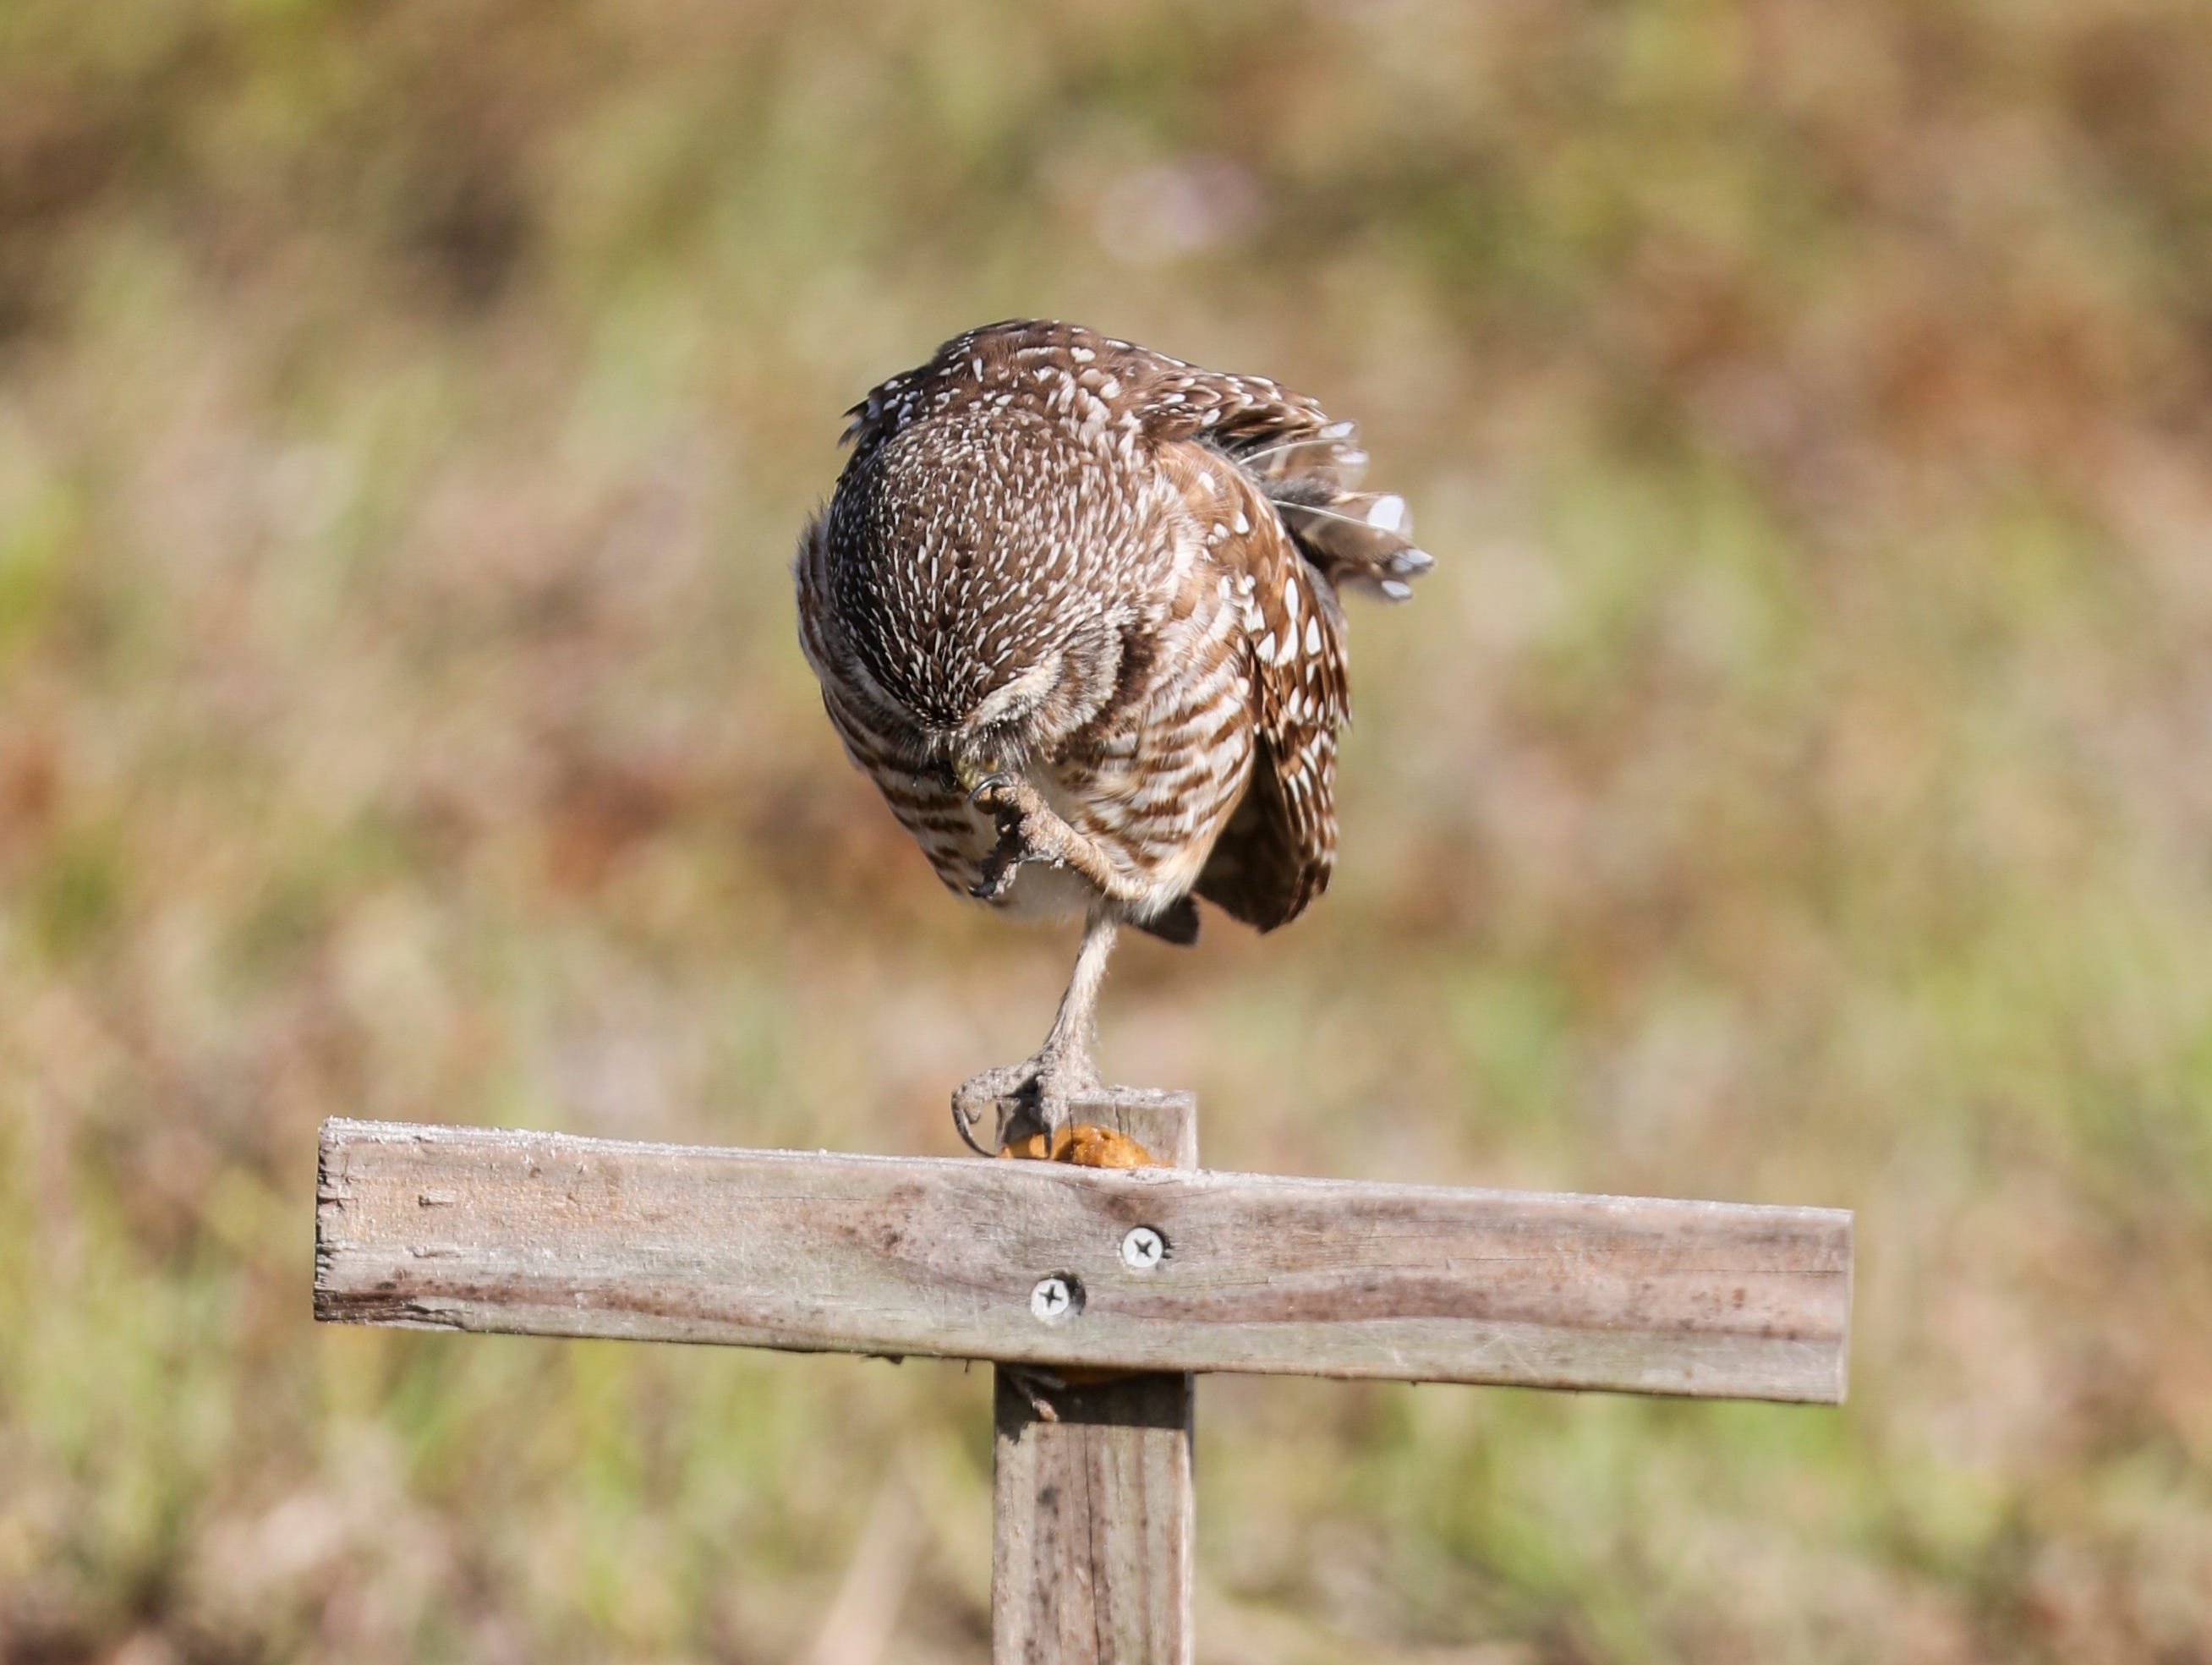 Newly named Owliver, stands watch from the perch right outside his den.  Cape Coral's inaugural ÒGround-Owl DayÓ ceremony was Saturday, February 2, 2019. The winning names for the pair of burrowing owls that live next to the City Hall are Owliver and Owlivia.